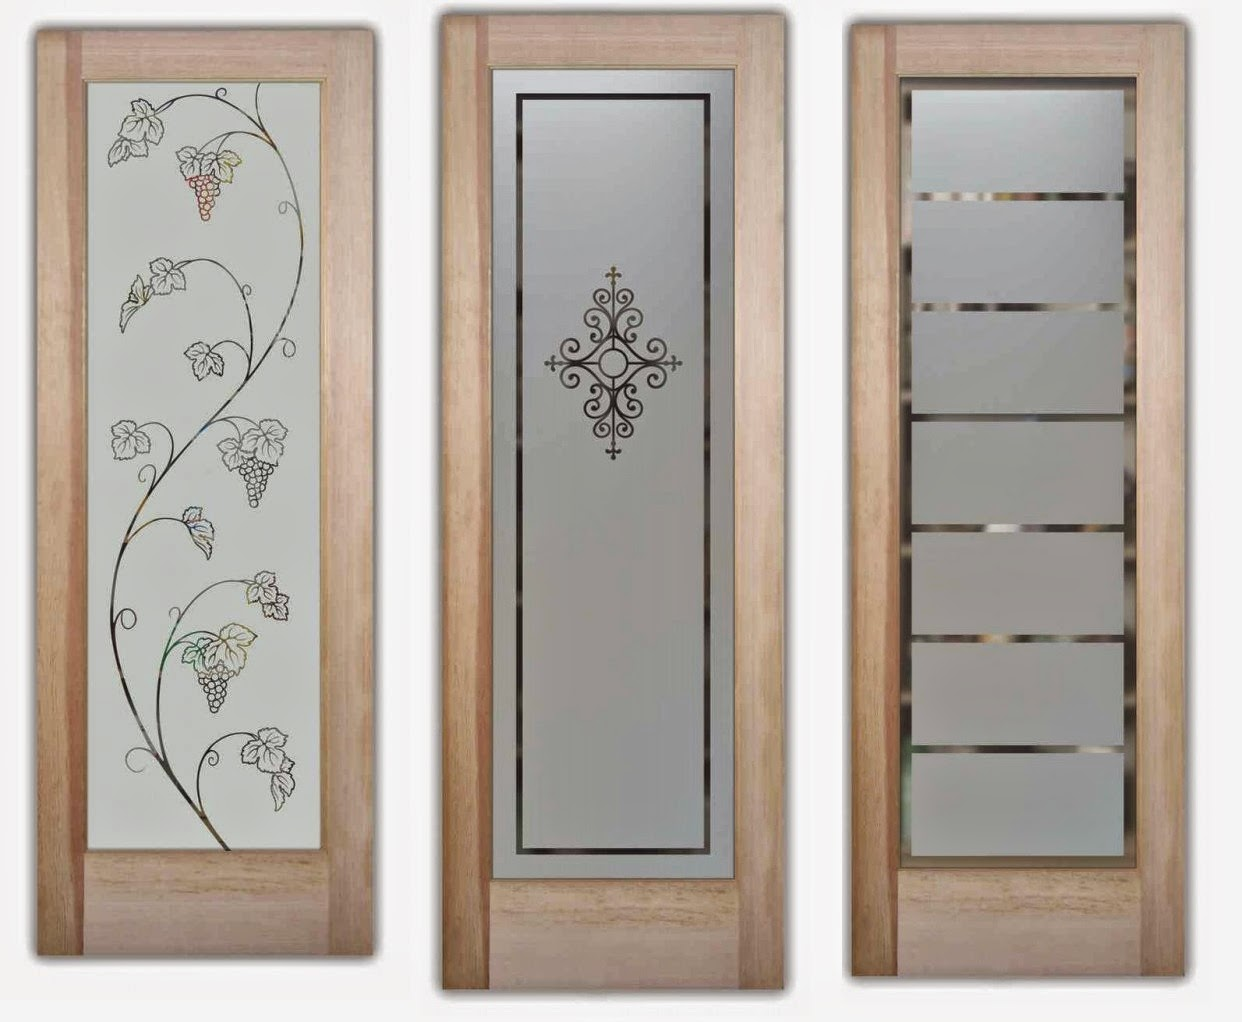 Etched glass doors for interior beauty etched glass nyc for Etched glass doors